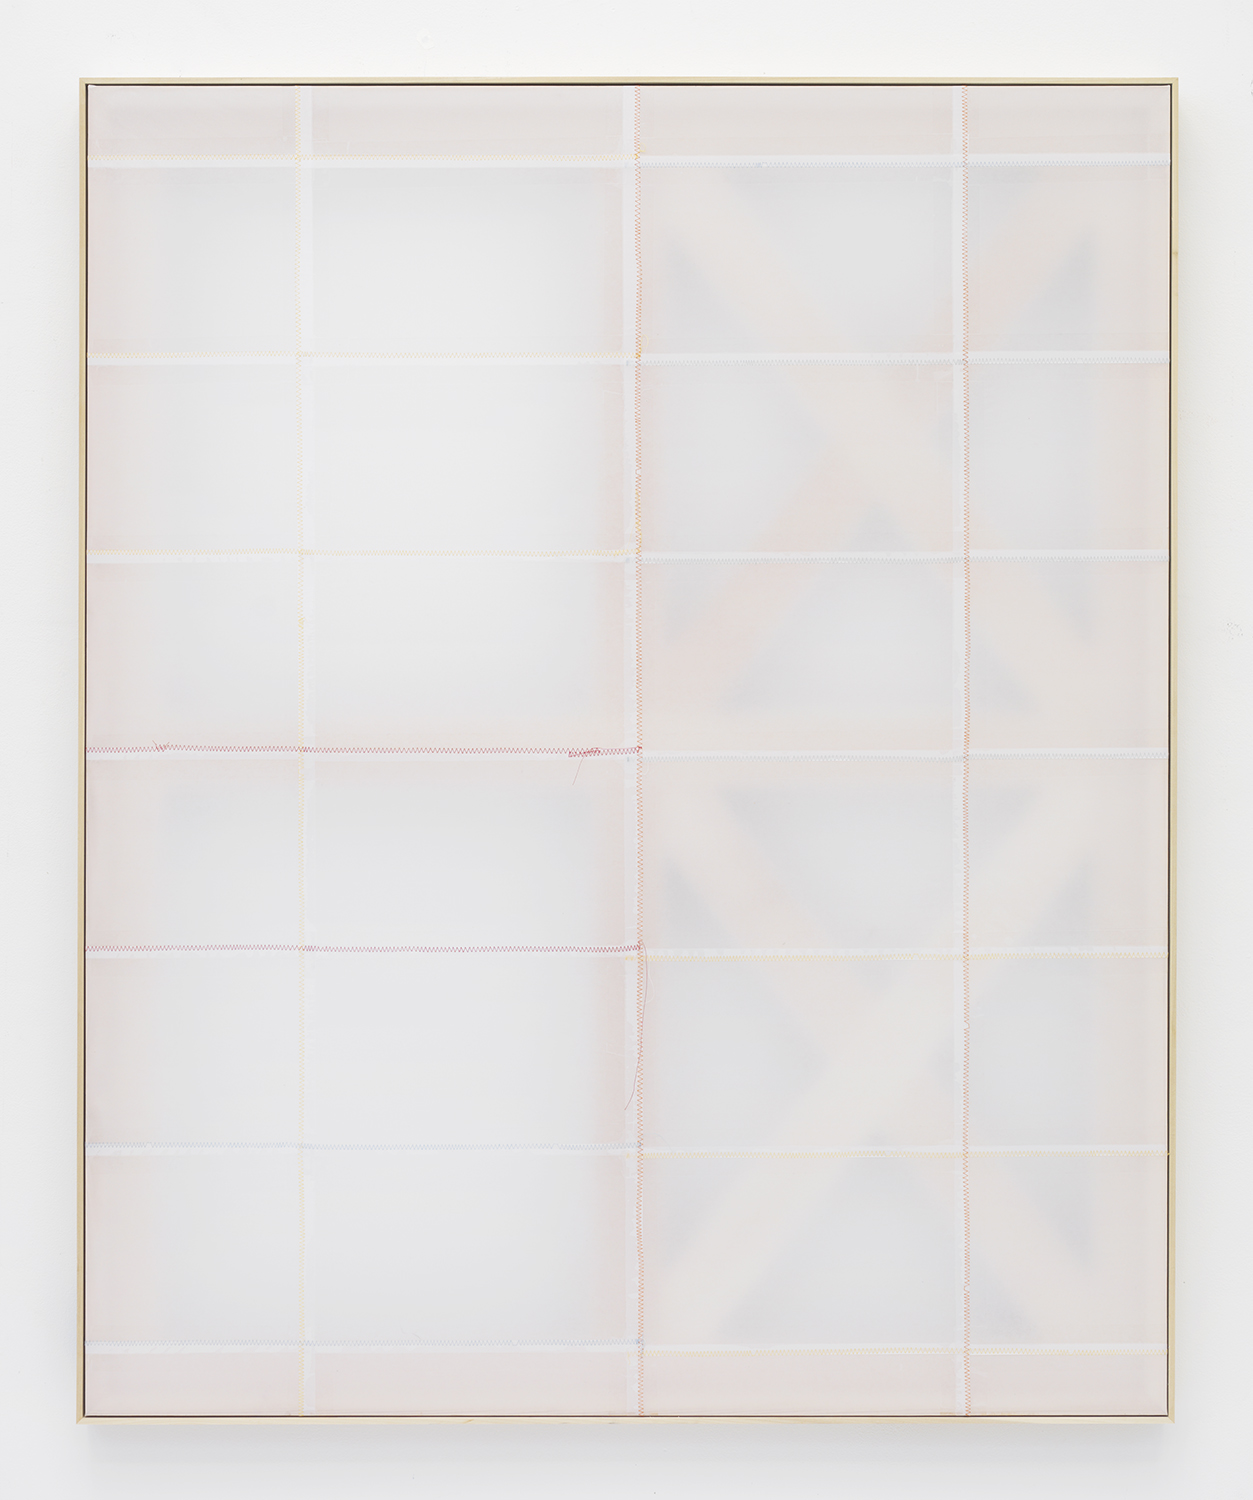 Jack Greer  Phase 2:12 , 2014 Paper, tape and thread on wood stretcher 54.75 x 44.75 inches